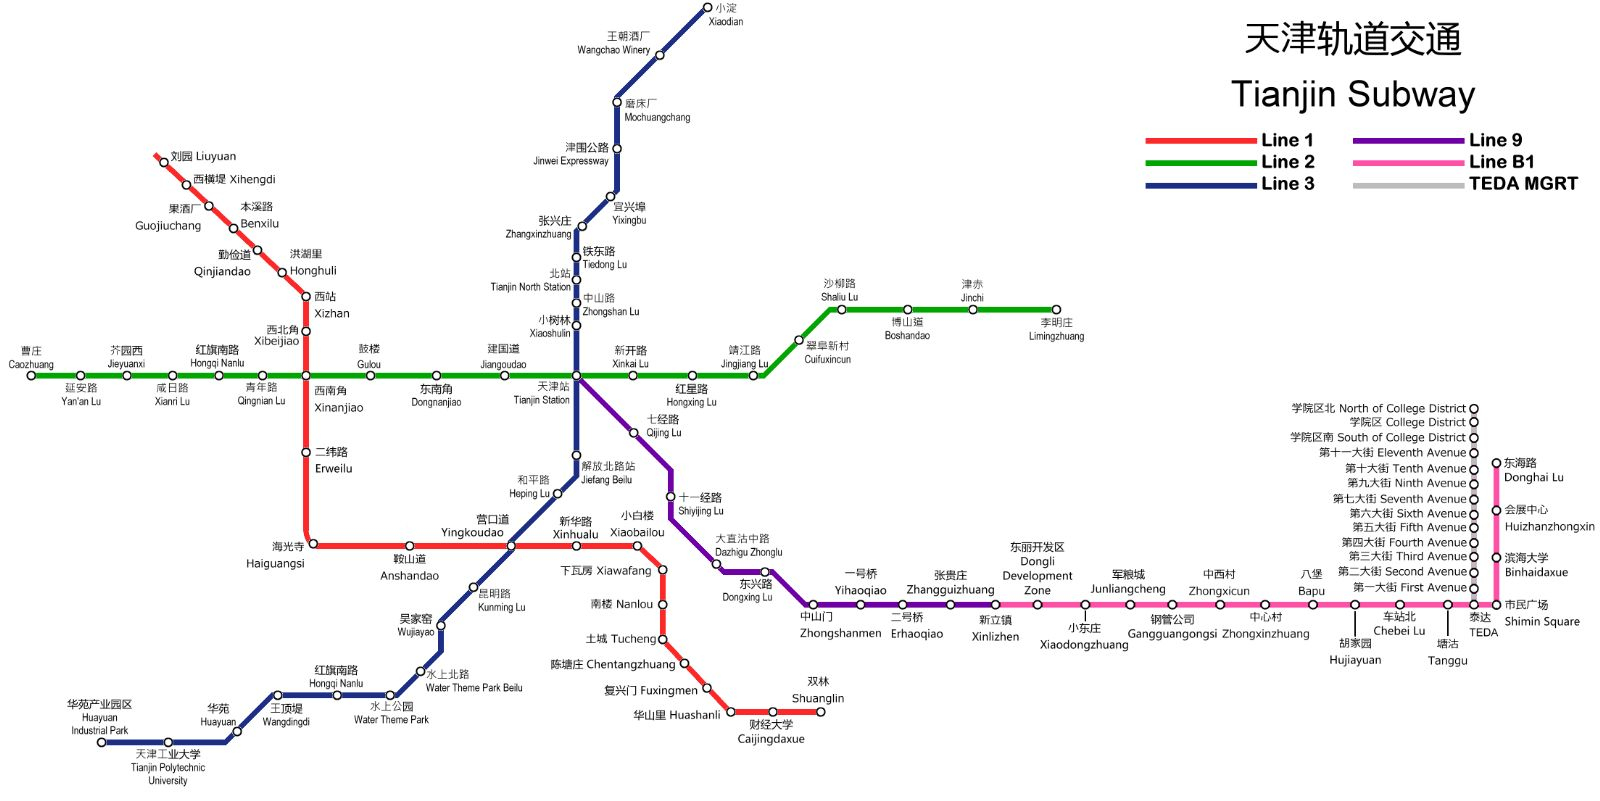 Tianjin Subway Map